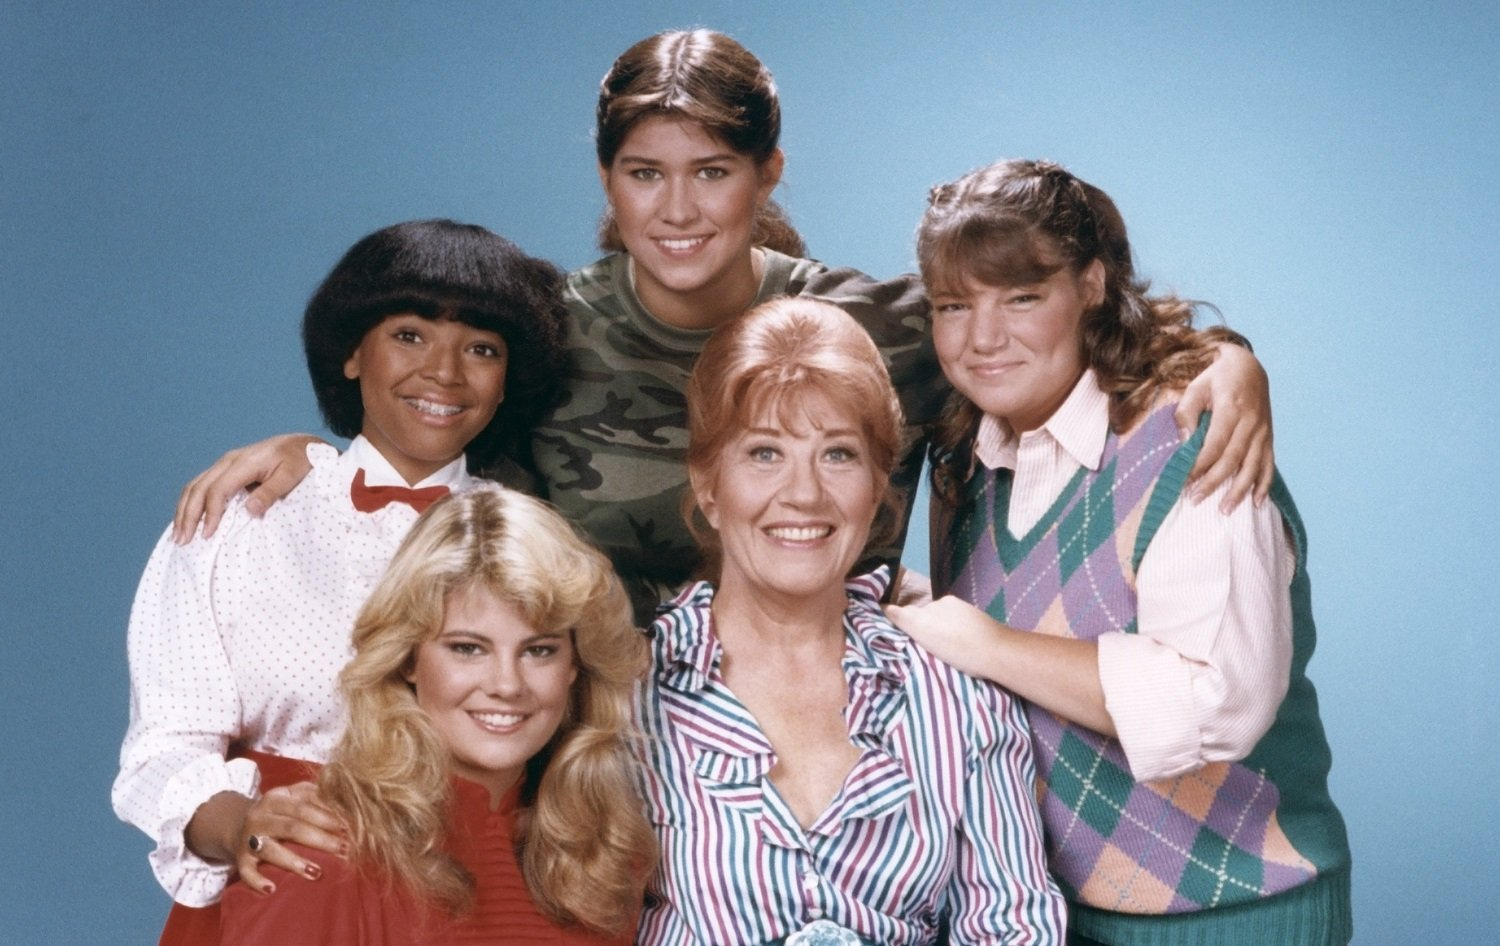 The Cast Of The Facts Of Life, Then And Now